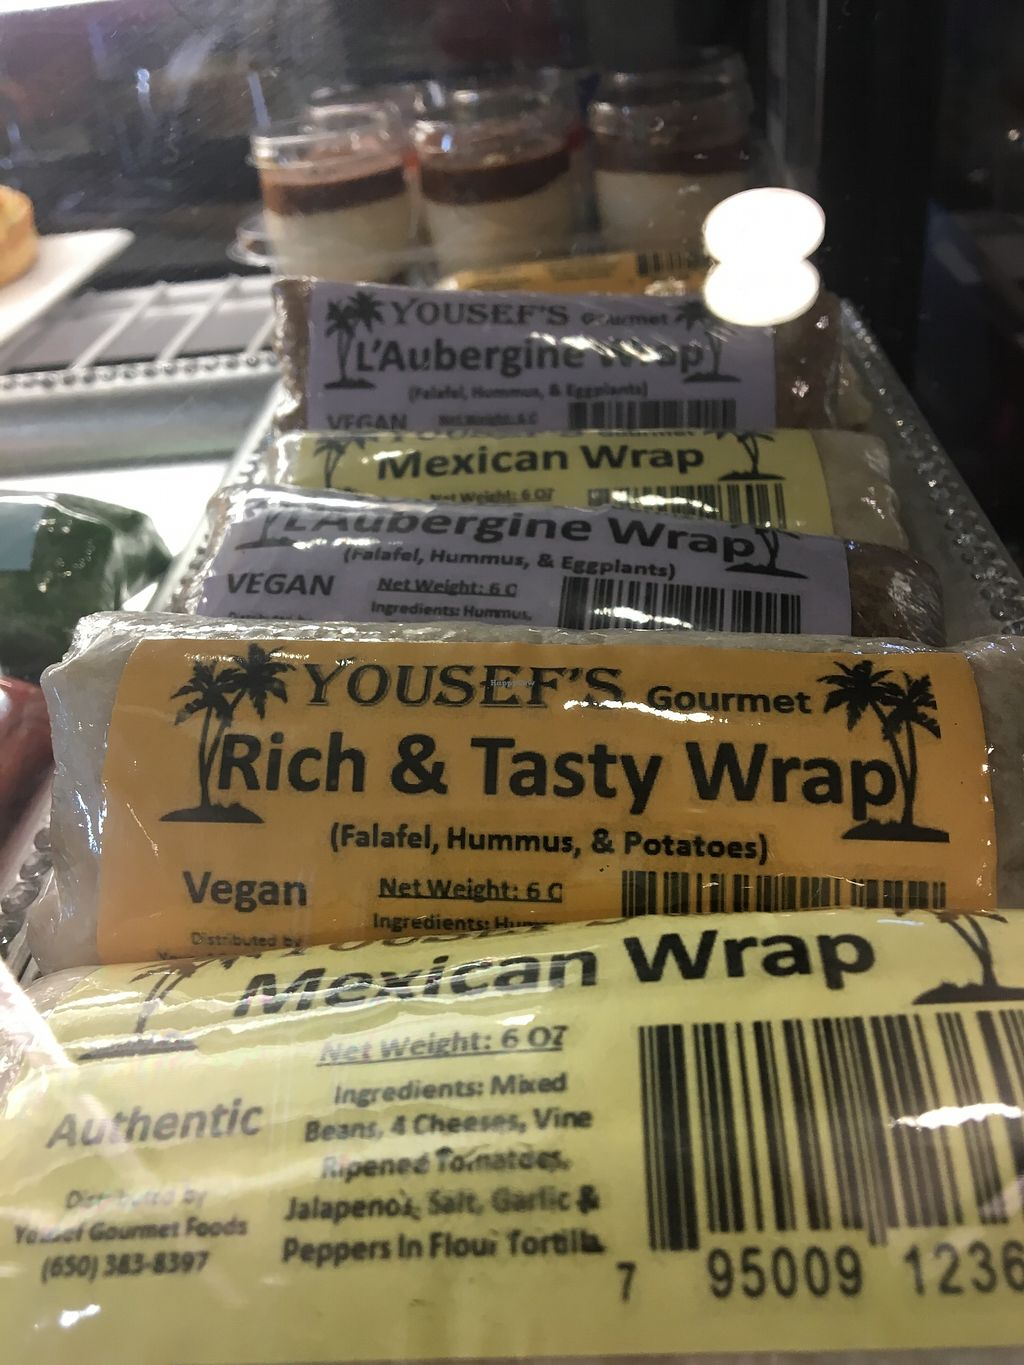 """Photo of 3 Bees Cafe  by <a href=""""/members/profile/Clean%26Green"""">Clean&Green</a> <br/>Variety of vegan wraps <br/> December 15, 2017  - <a href='/contact/abuse/image/107313/335900'>Report</a>"""